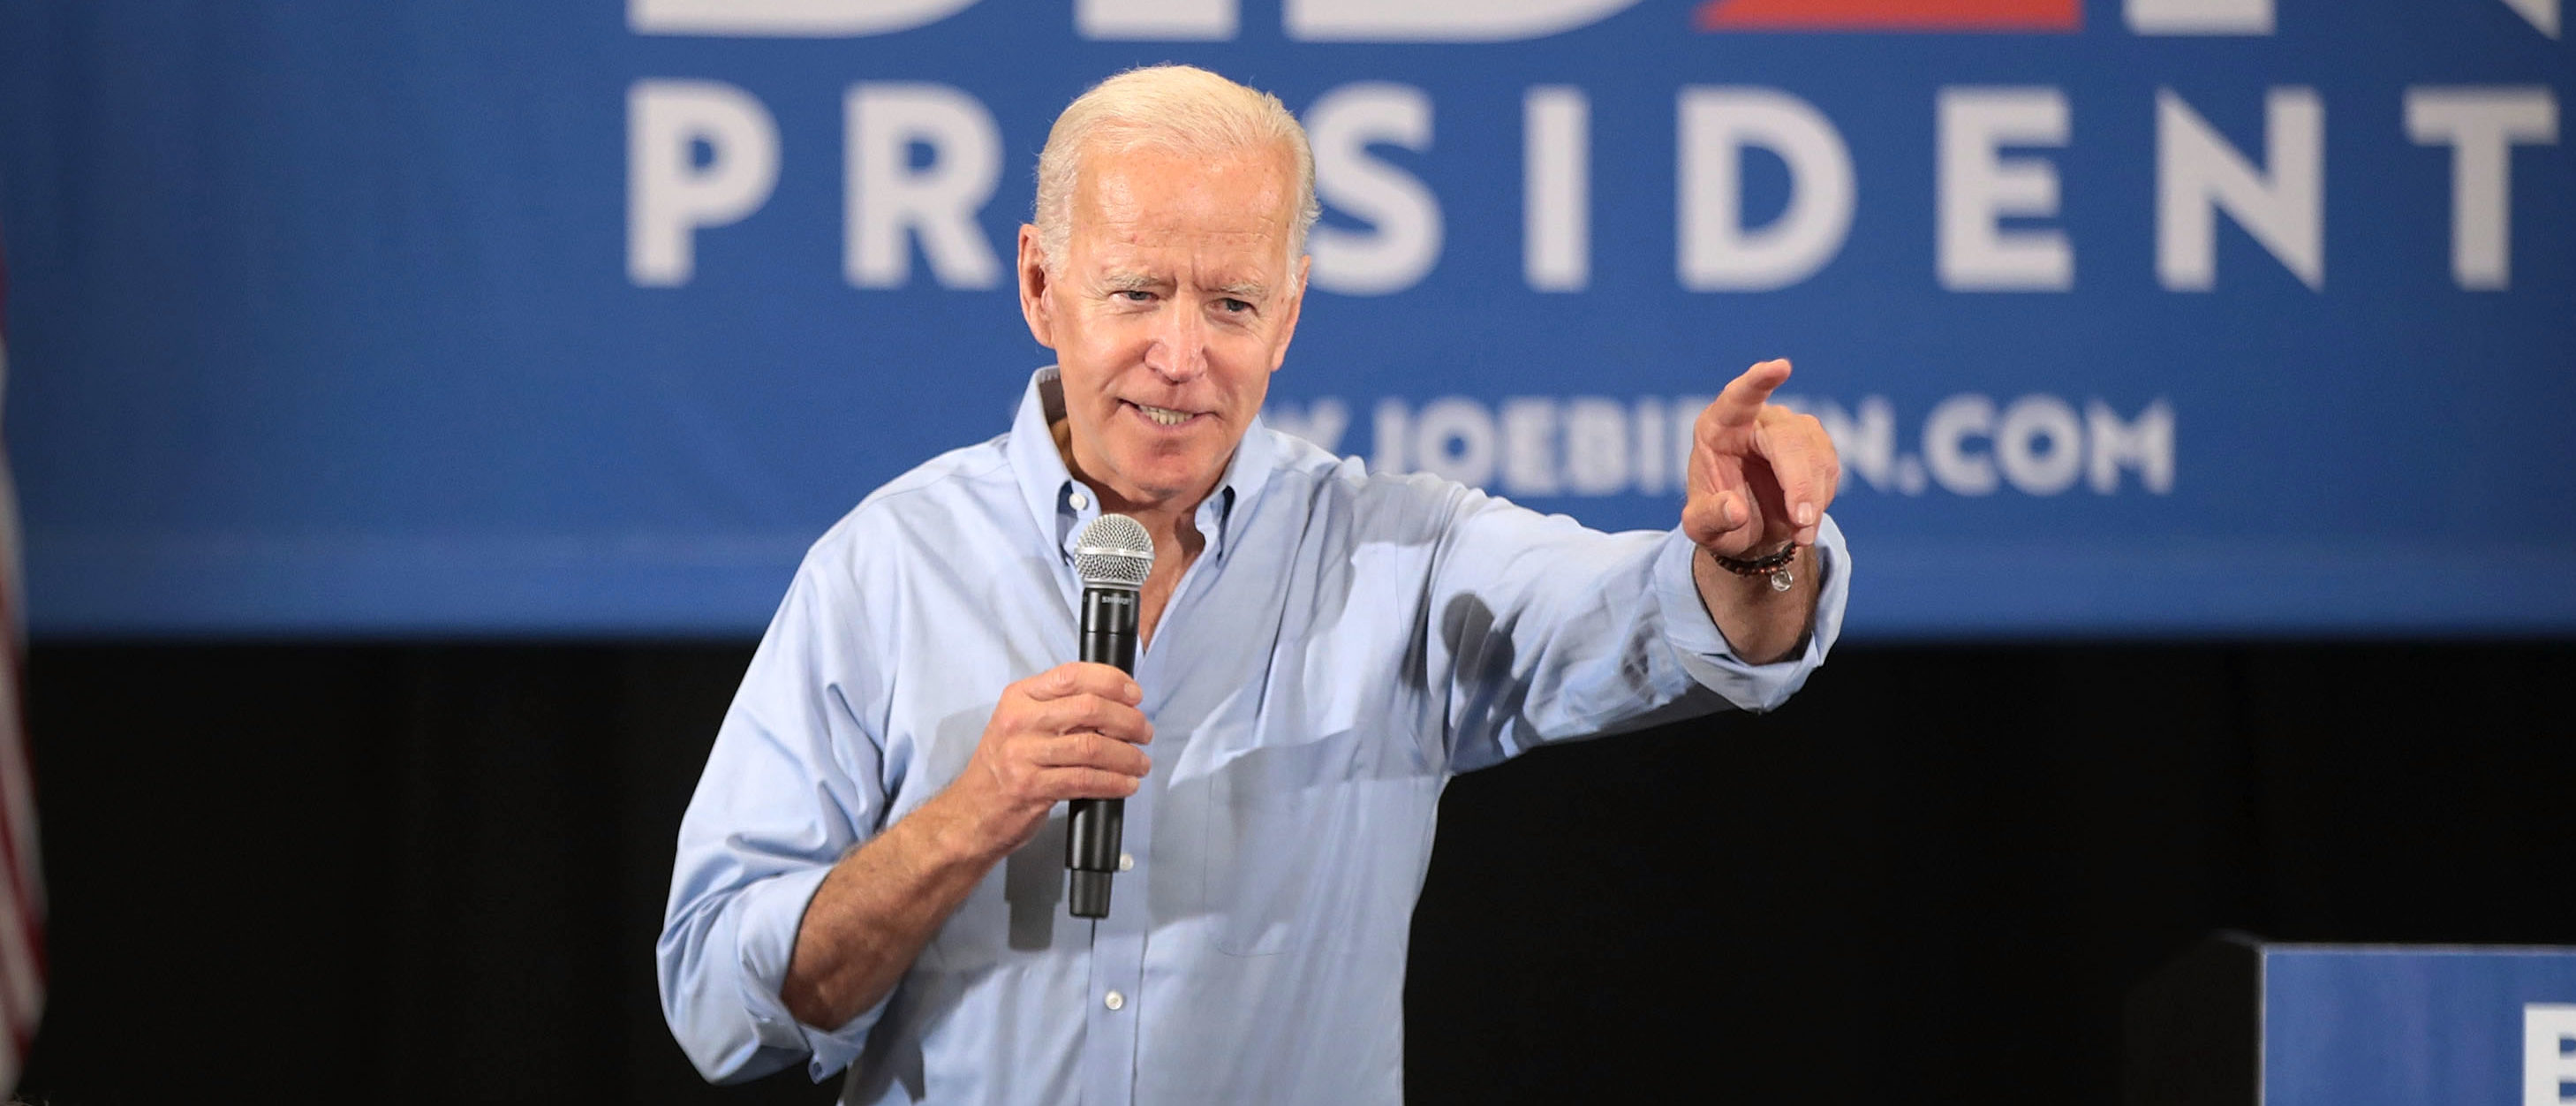 Democratic presidential candidate and former U.S. Vice President Joe Biden speaks during a campaign stop at Clinton Community College on June 12, 2019 in Clinton, Iowa. (Scott Olson/Getty Images)